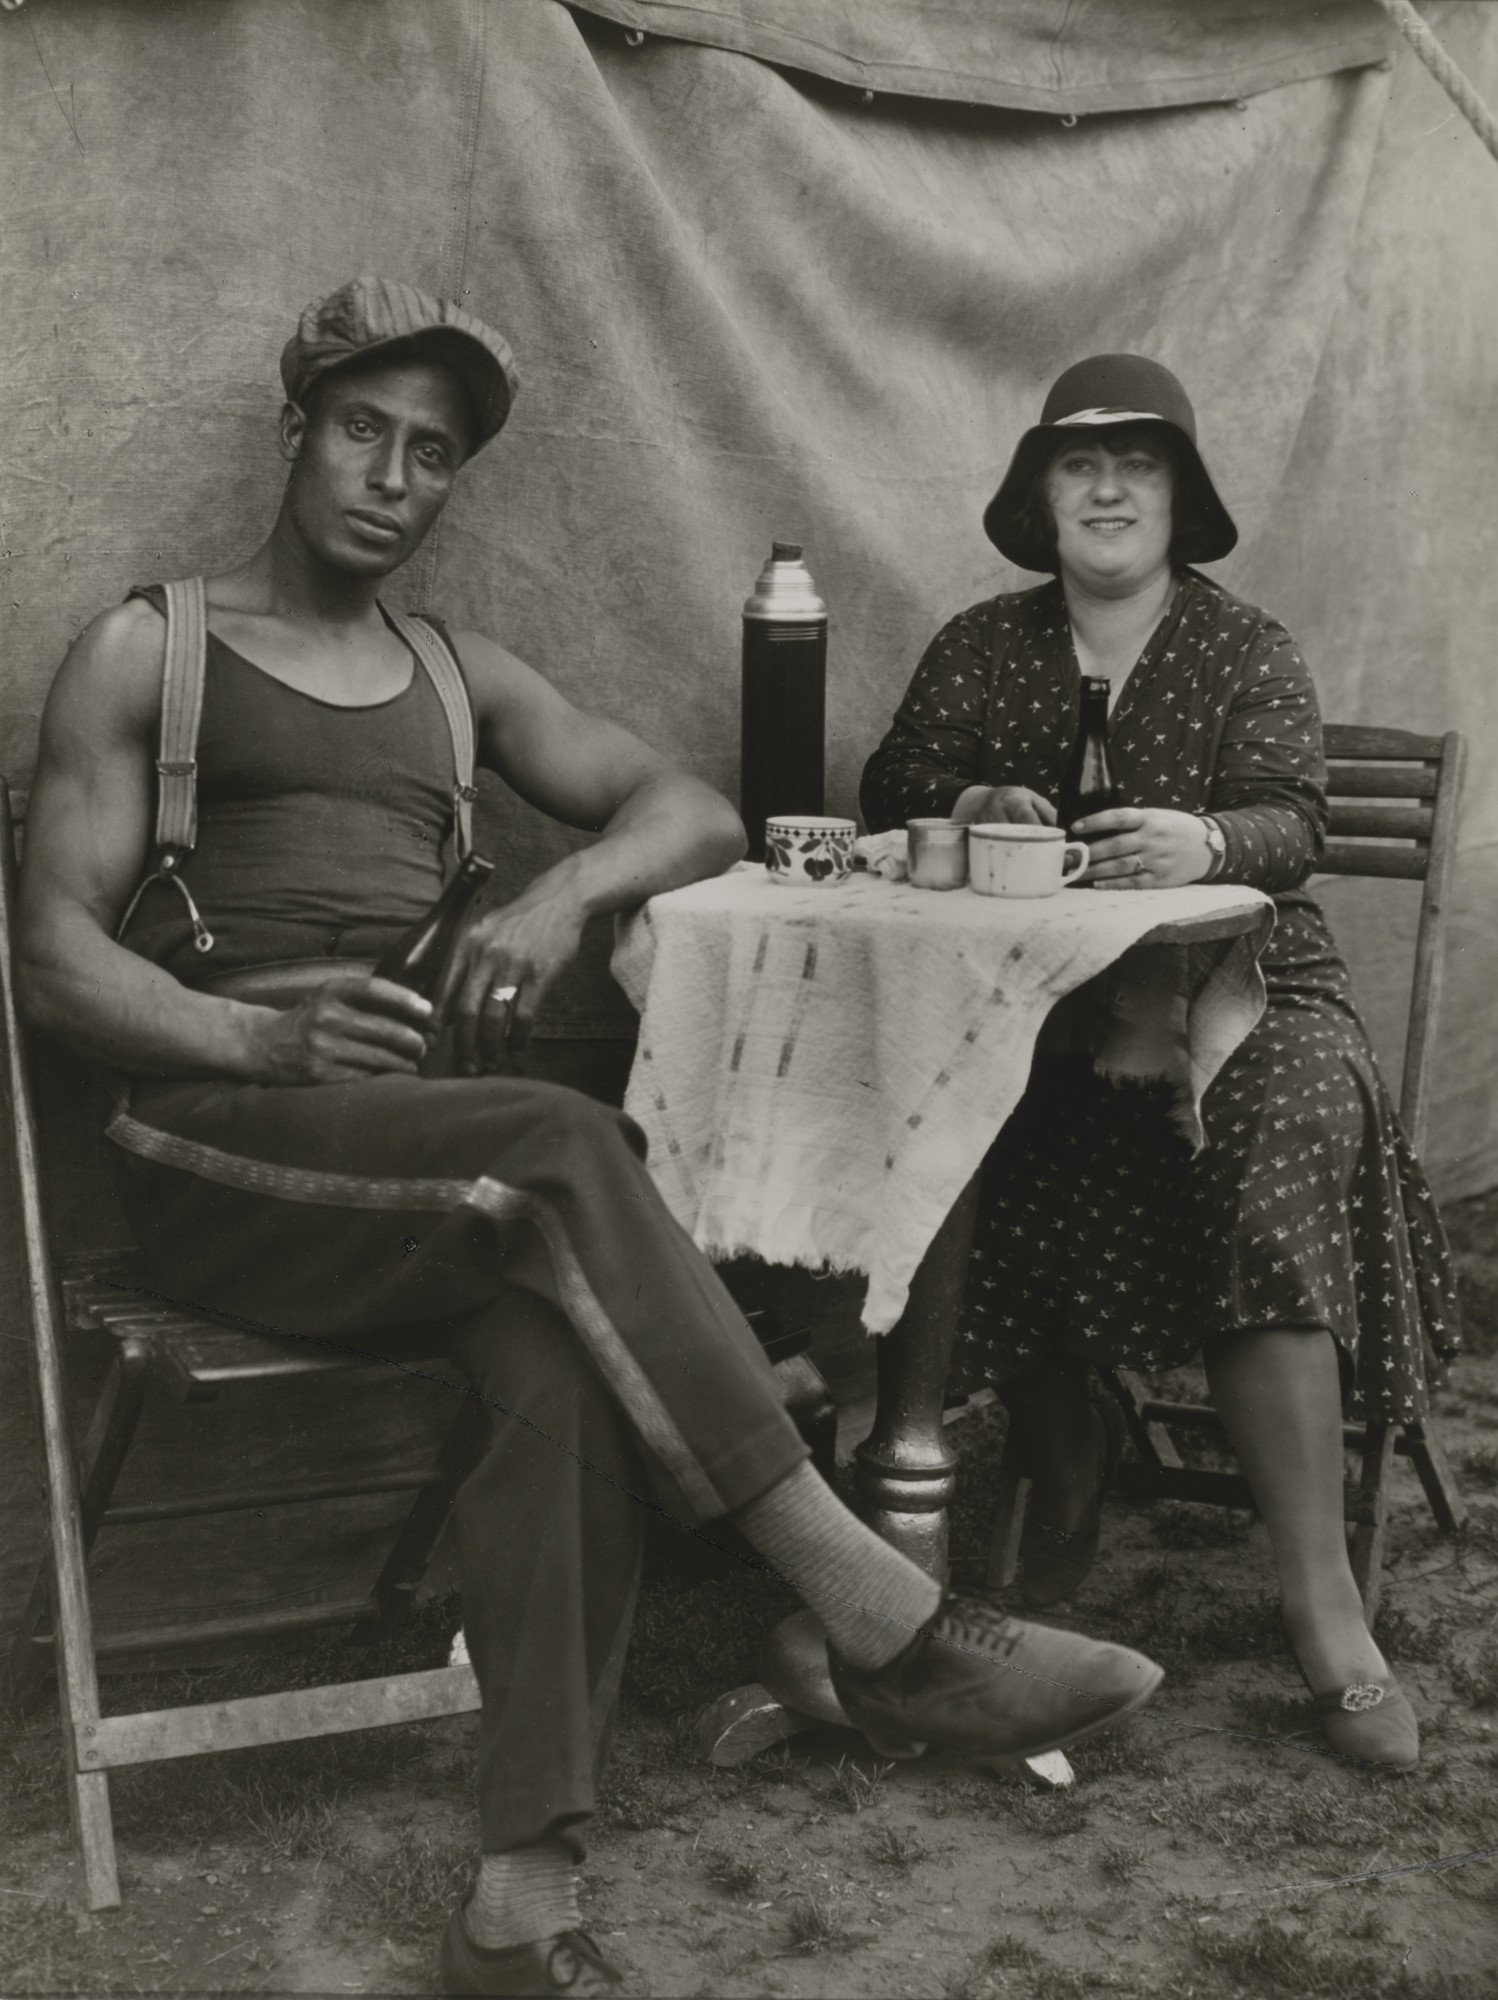 August Sander. Indian Man and German Woman. 1926